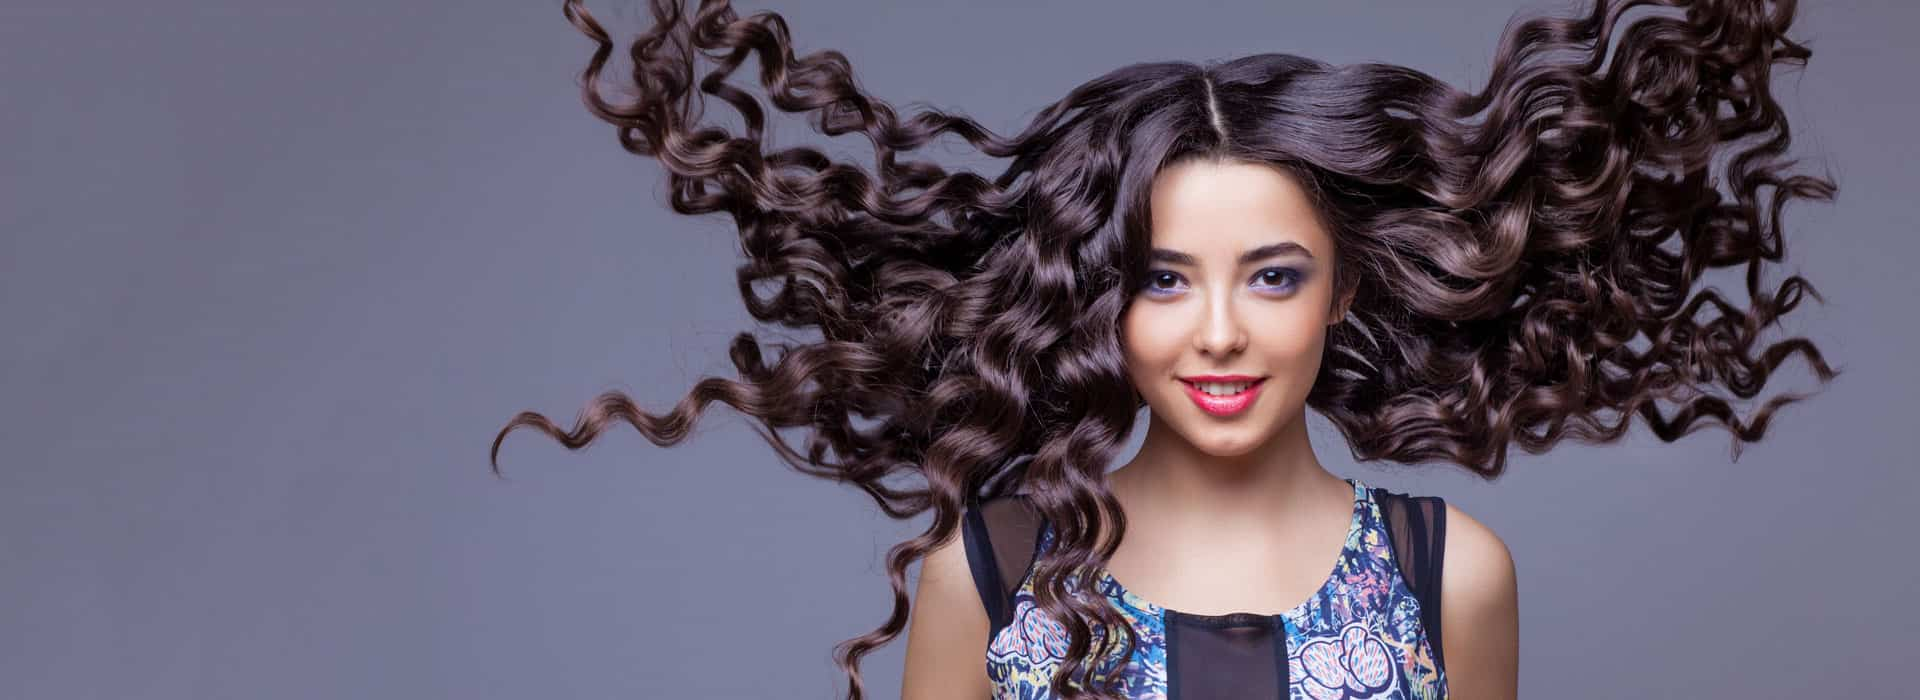 Best Shampoo For Hair Growth 2019 – The Complete Buying Guide